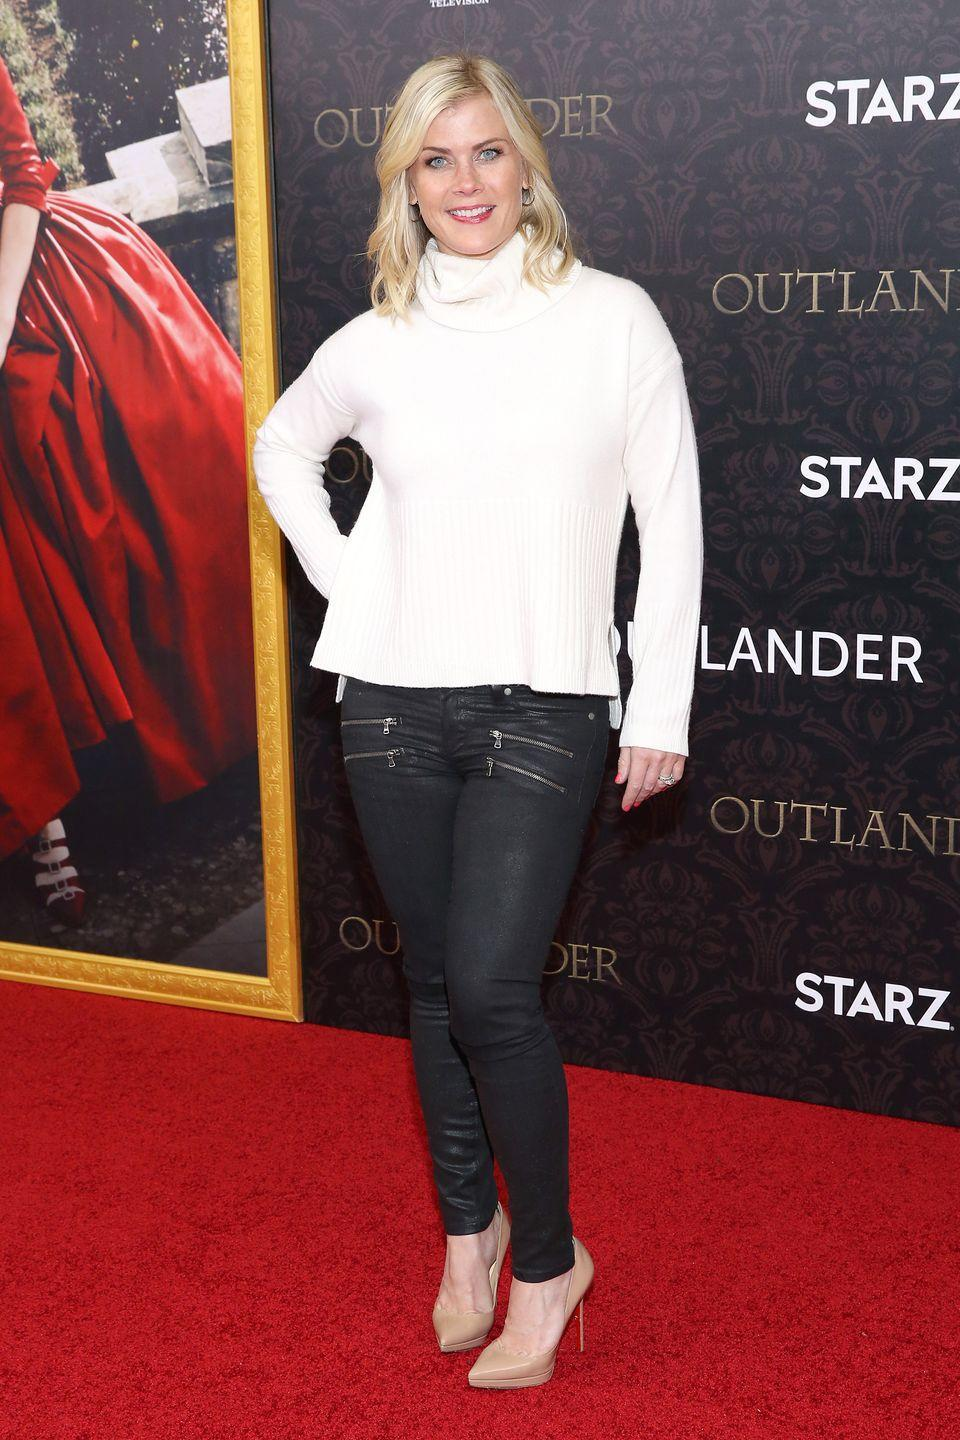 """<p>Actress and former host of NBC's <em>The Biggest Loser </em><a href=""""https://www.delish.com/food-news/a46635/what-alison-sweeney-actually-eats-in-a-day/"""" rel=""""nofollow noopener"""" target=""""_blank"""" data-ylk=""""slk:Alison Sweeney"""" class=""""link rapid-noclick-resp"""">Alison Sweeney</a> is so obsessed with blueberries, she stops at nothing to add them to her meals. She'll top a turkey burger with blueberry jam instead of store-bought ketchup. That's definitely a new one. </p>"""